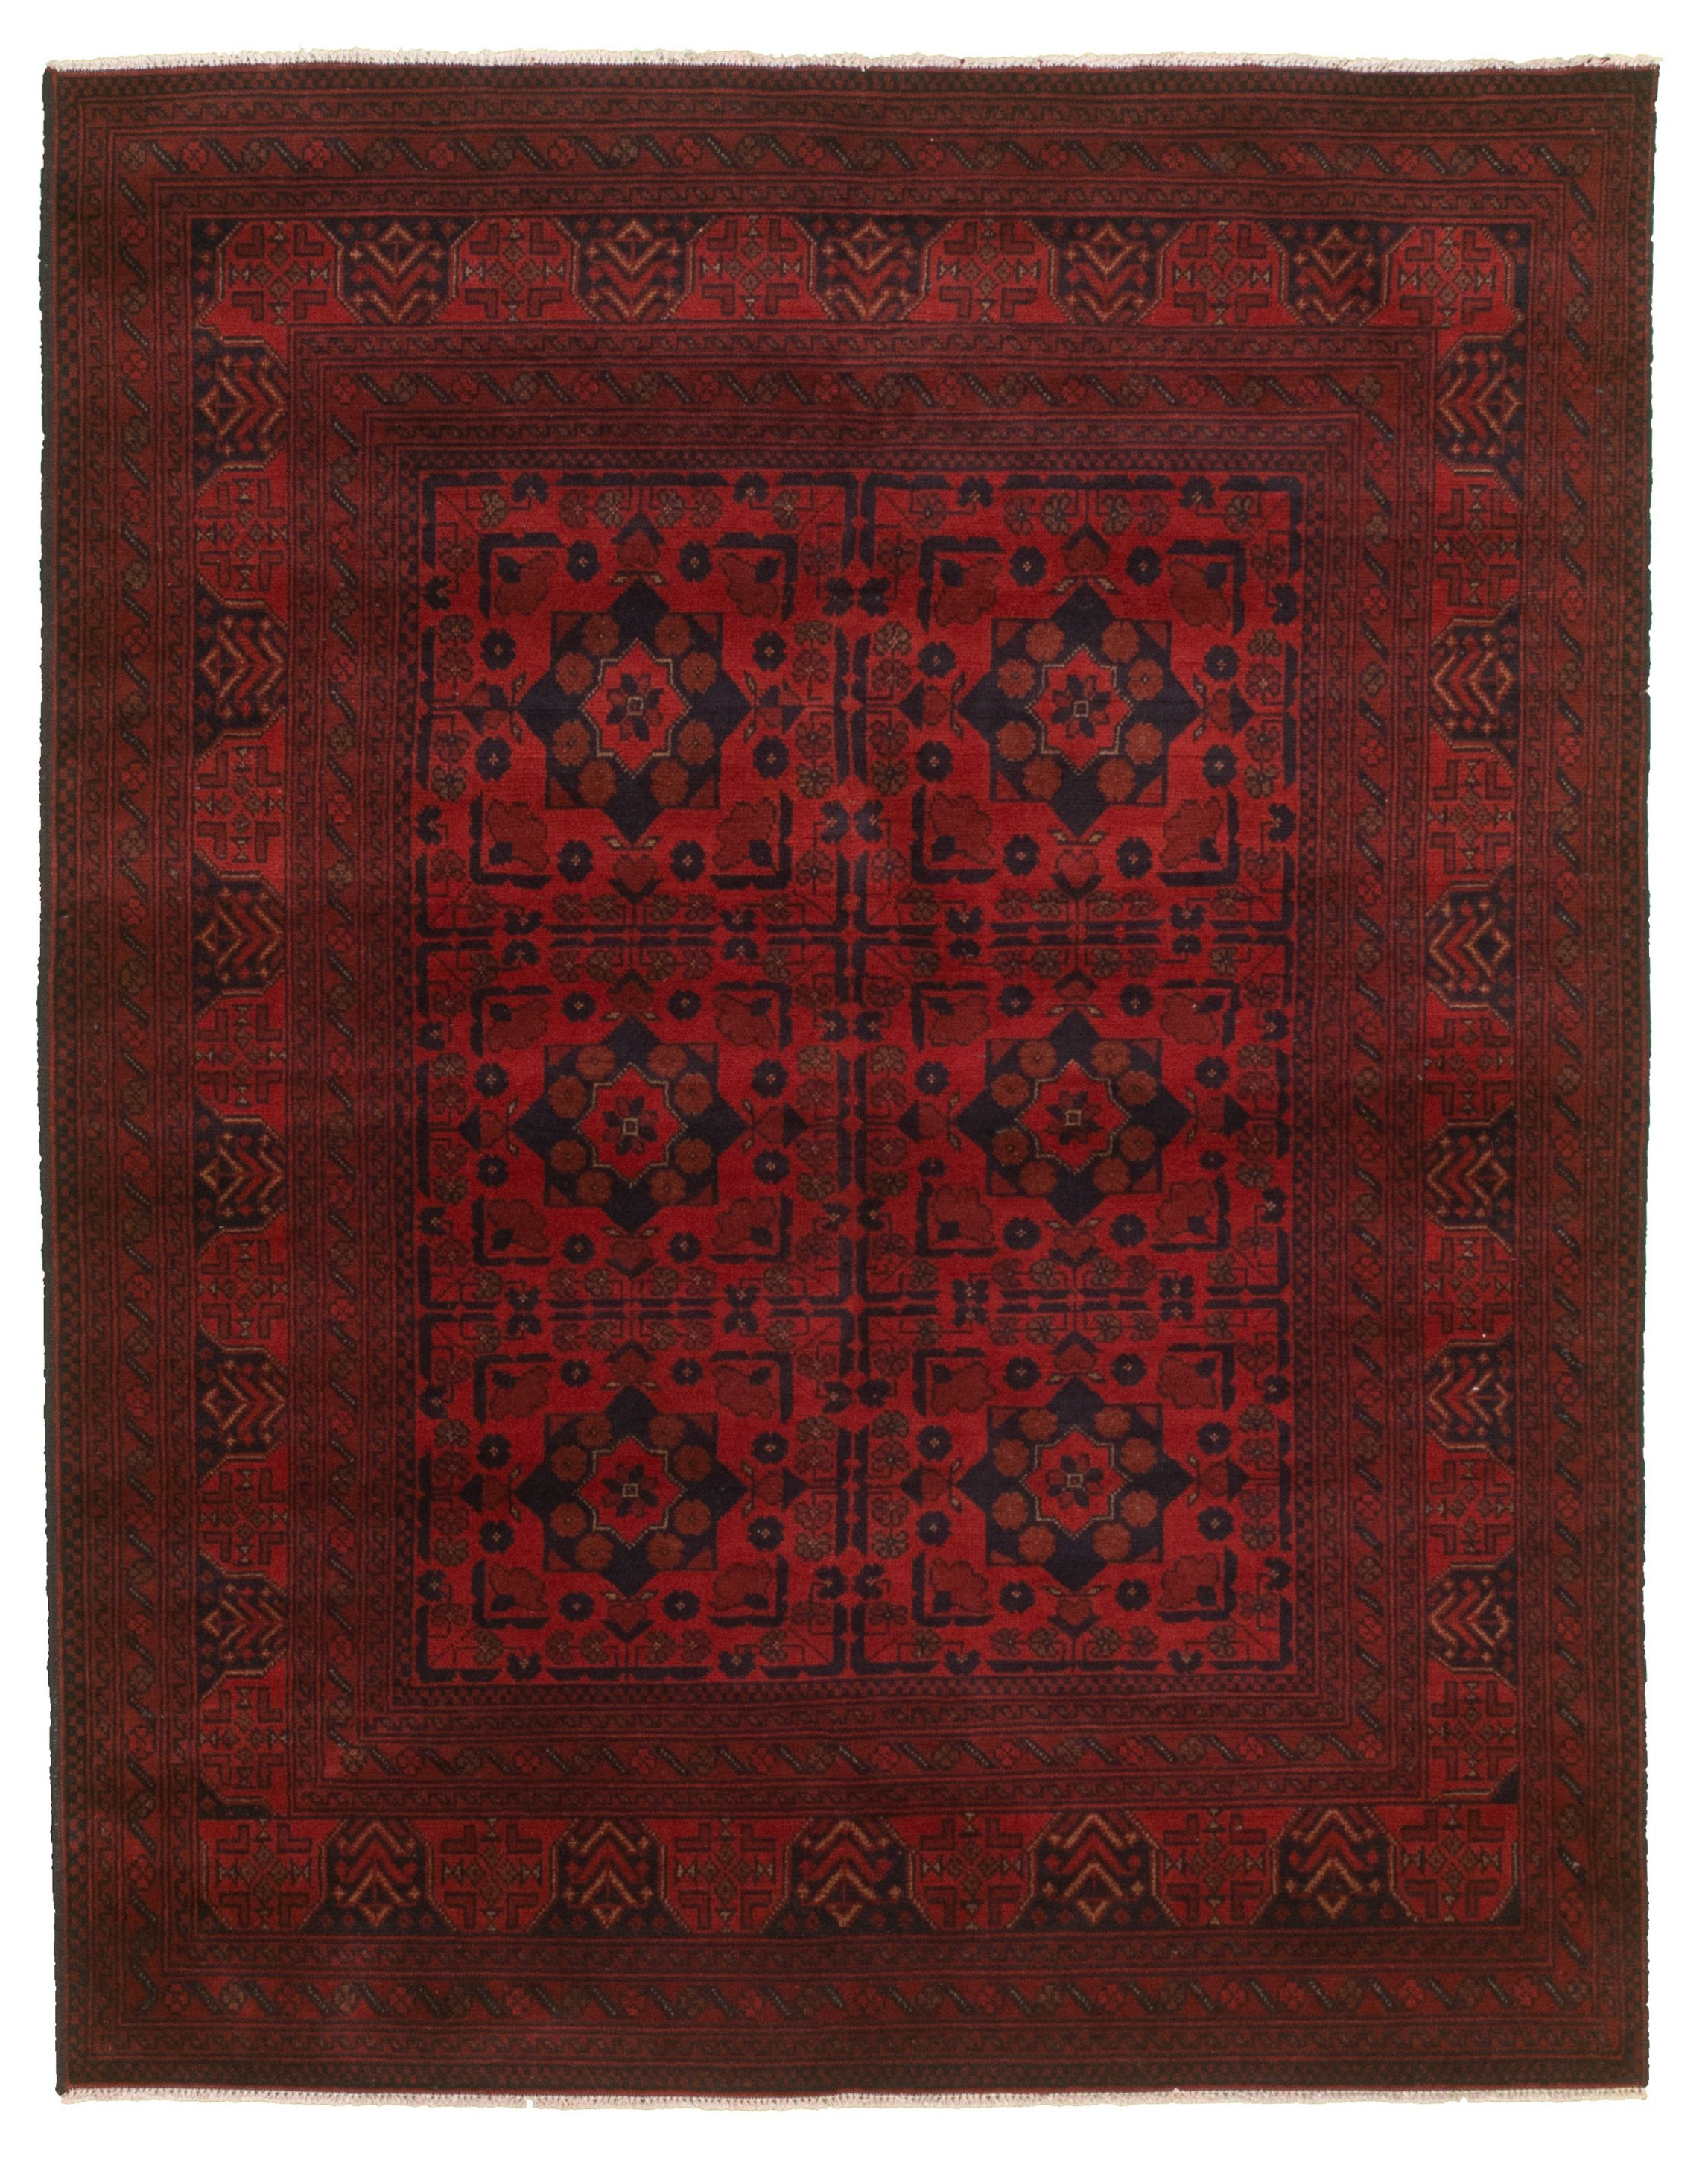 """Hand-knotted Finest Khal Mohammadi Red  Rug 5'1"""" x 6'6""""  Size: 5'1"""" x 6'6"""""""